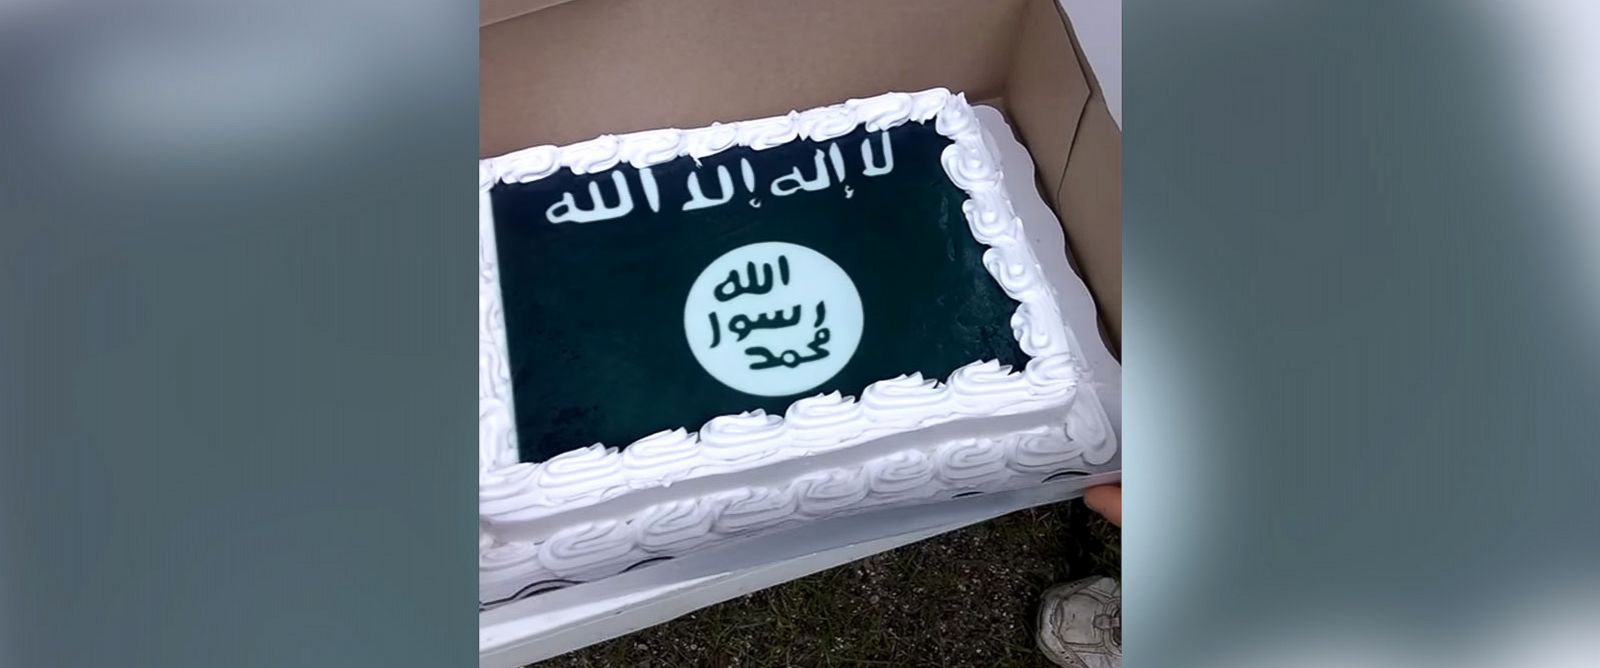 PHOTO: A Walmart store mistakenly baked a man a cake with an ISIS flag design.